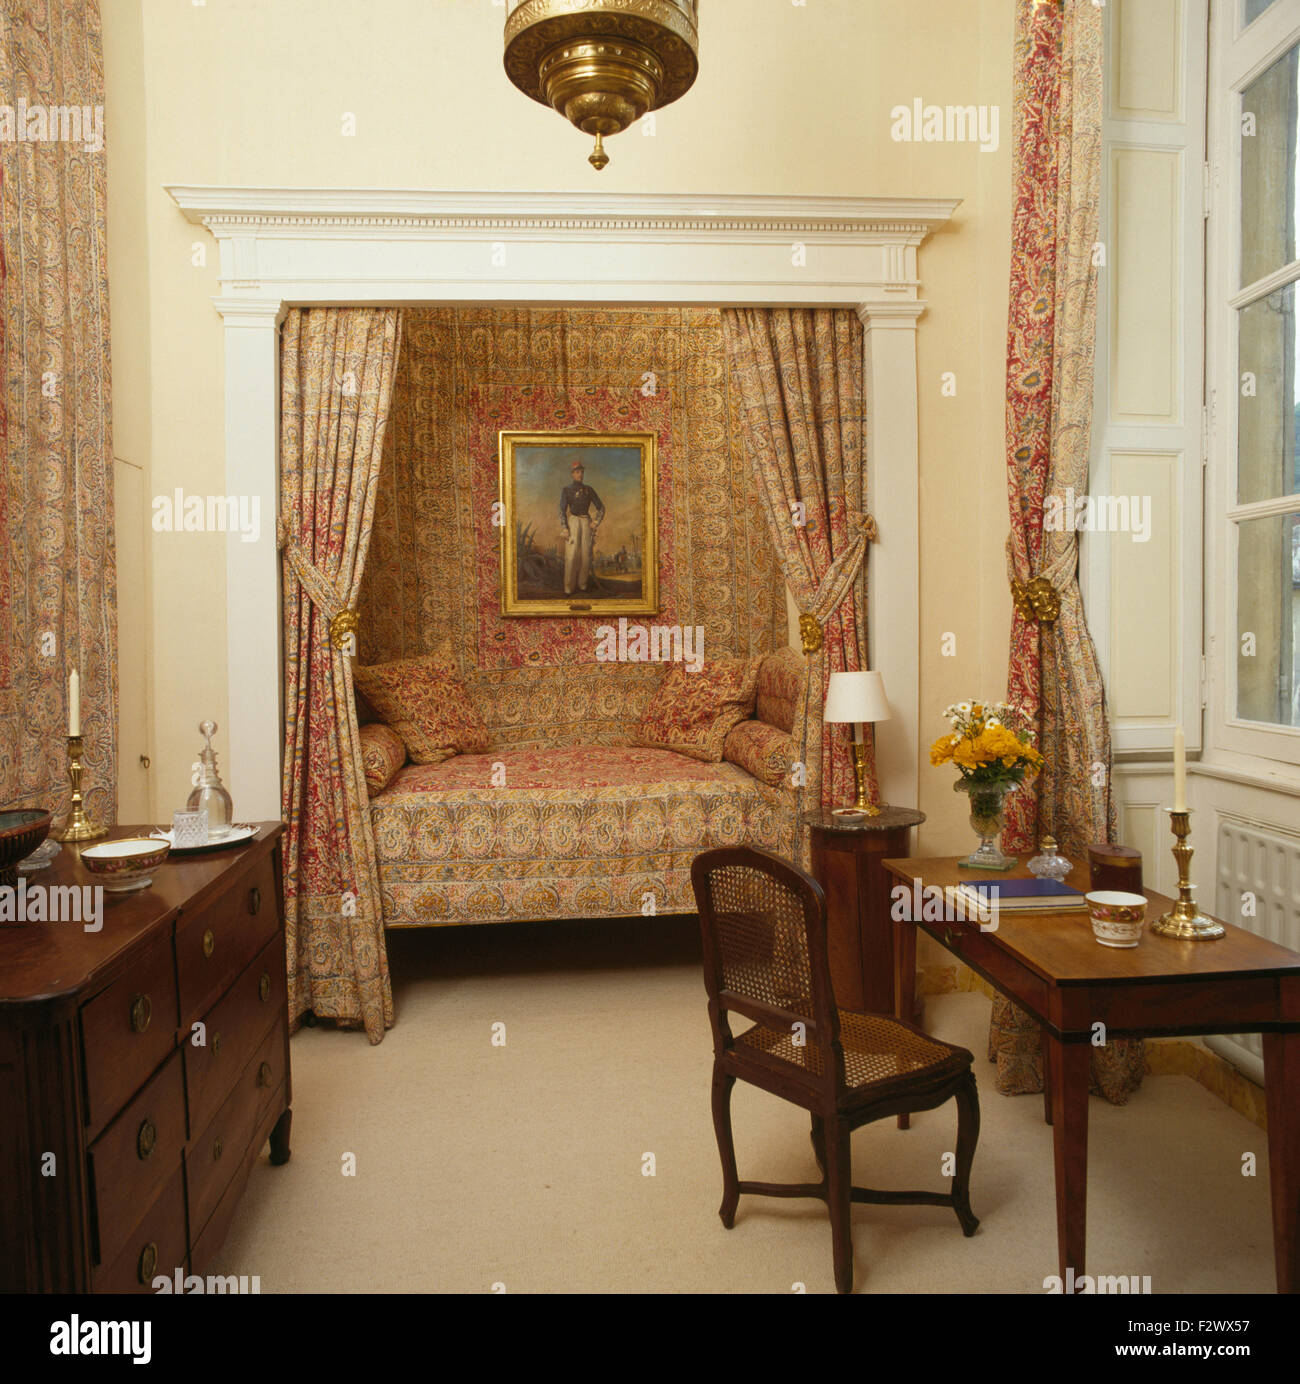 Patterned drapes on alcove bed in eighties French country bedroom with antique  furniture - Patterned Drapes On Alcove Bed In Eighties French Country Bedroom